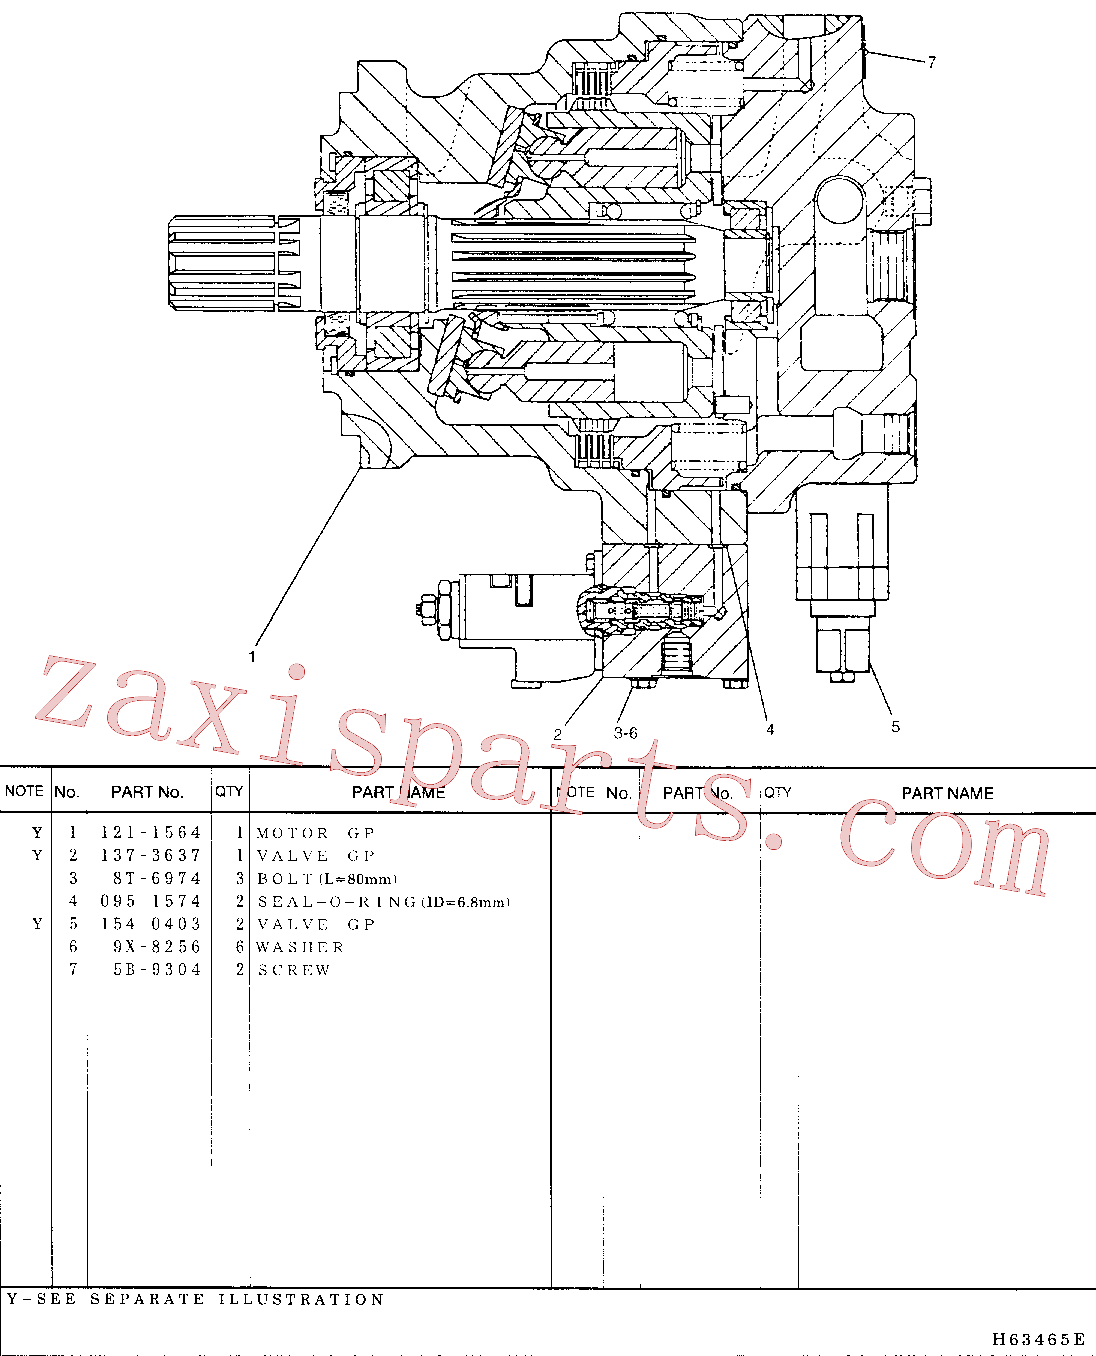 CAT 095-1595 for 321C Excavator(EXC) hydraulic system 107-7054 Assembly